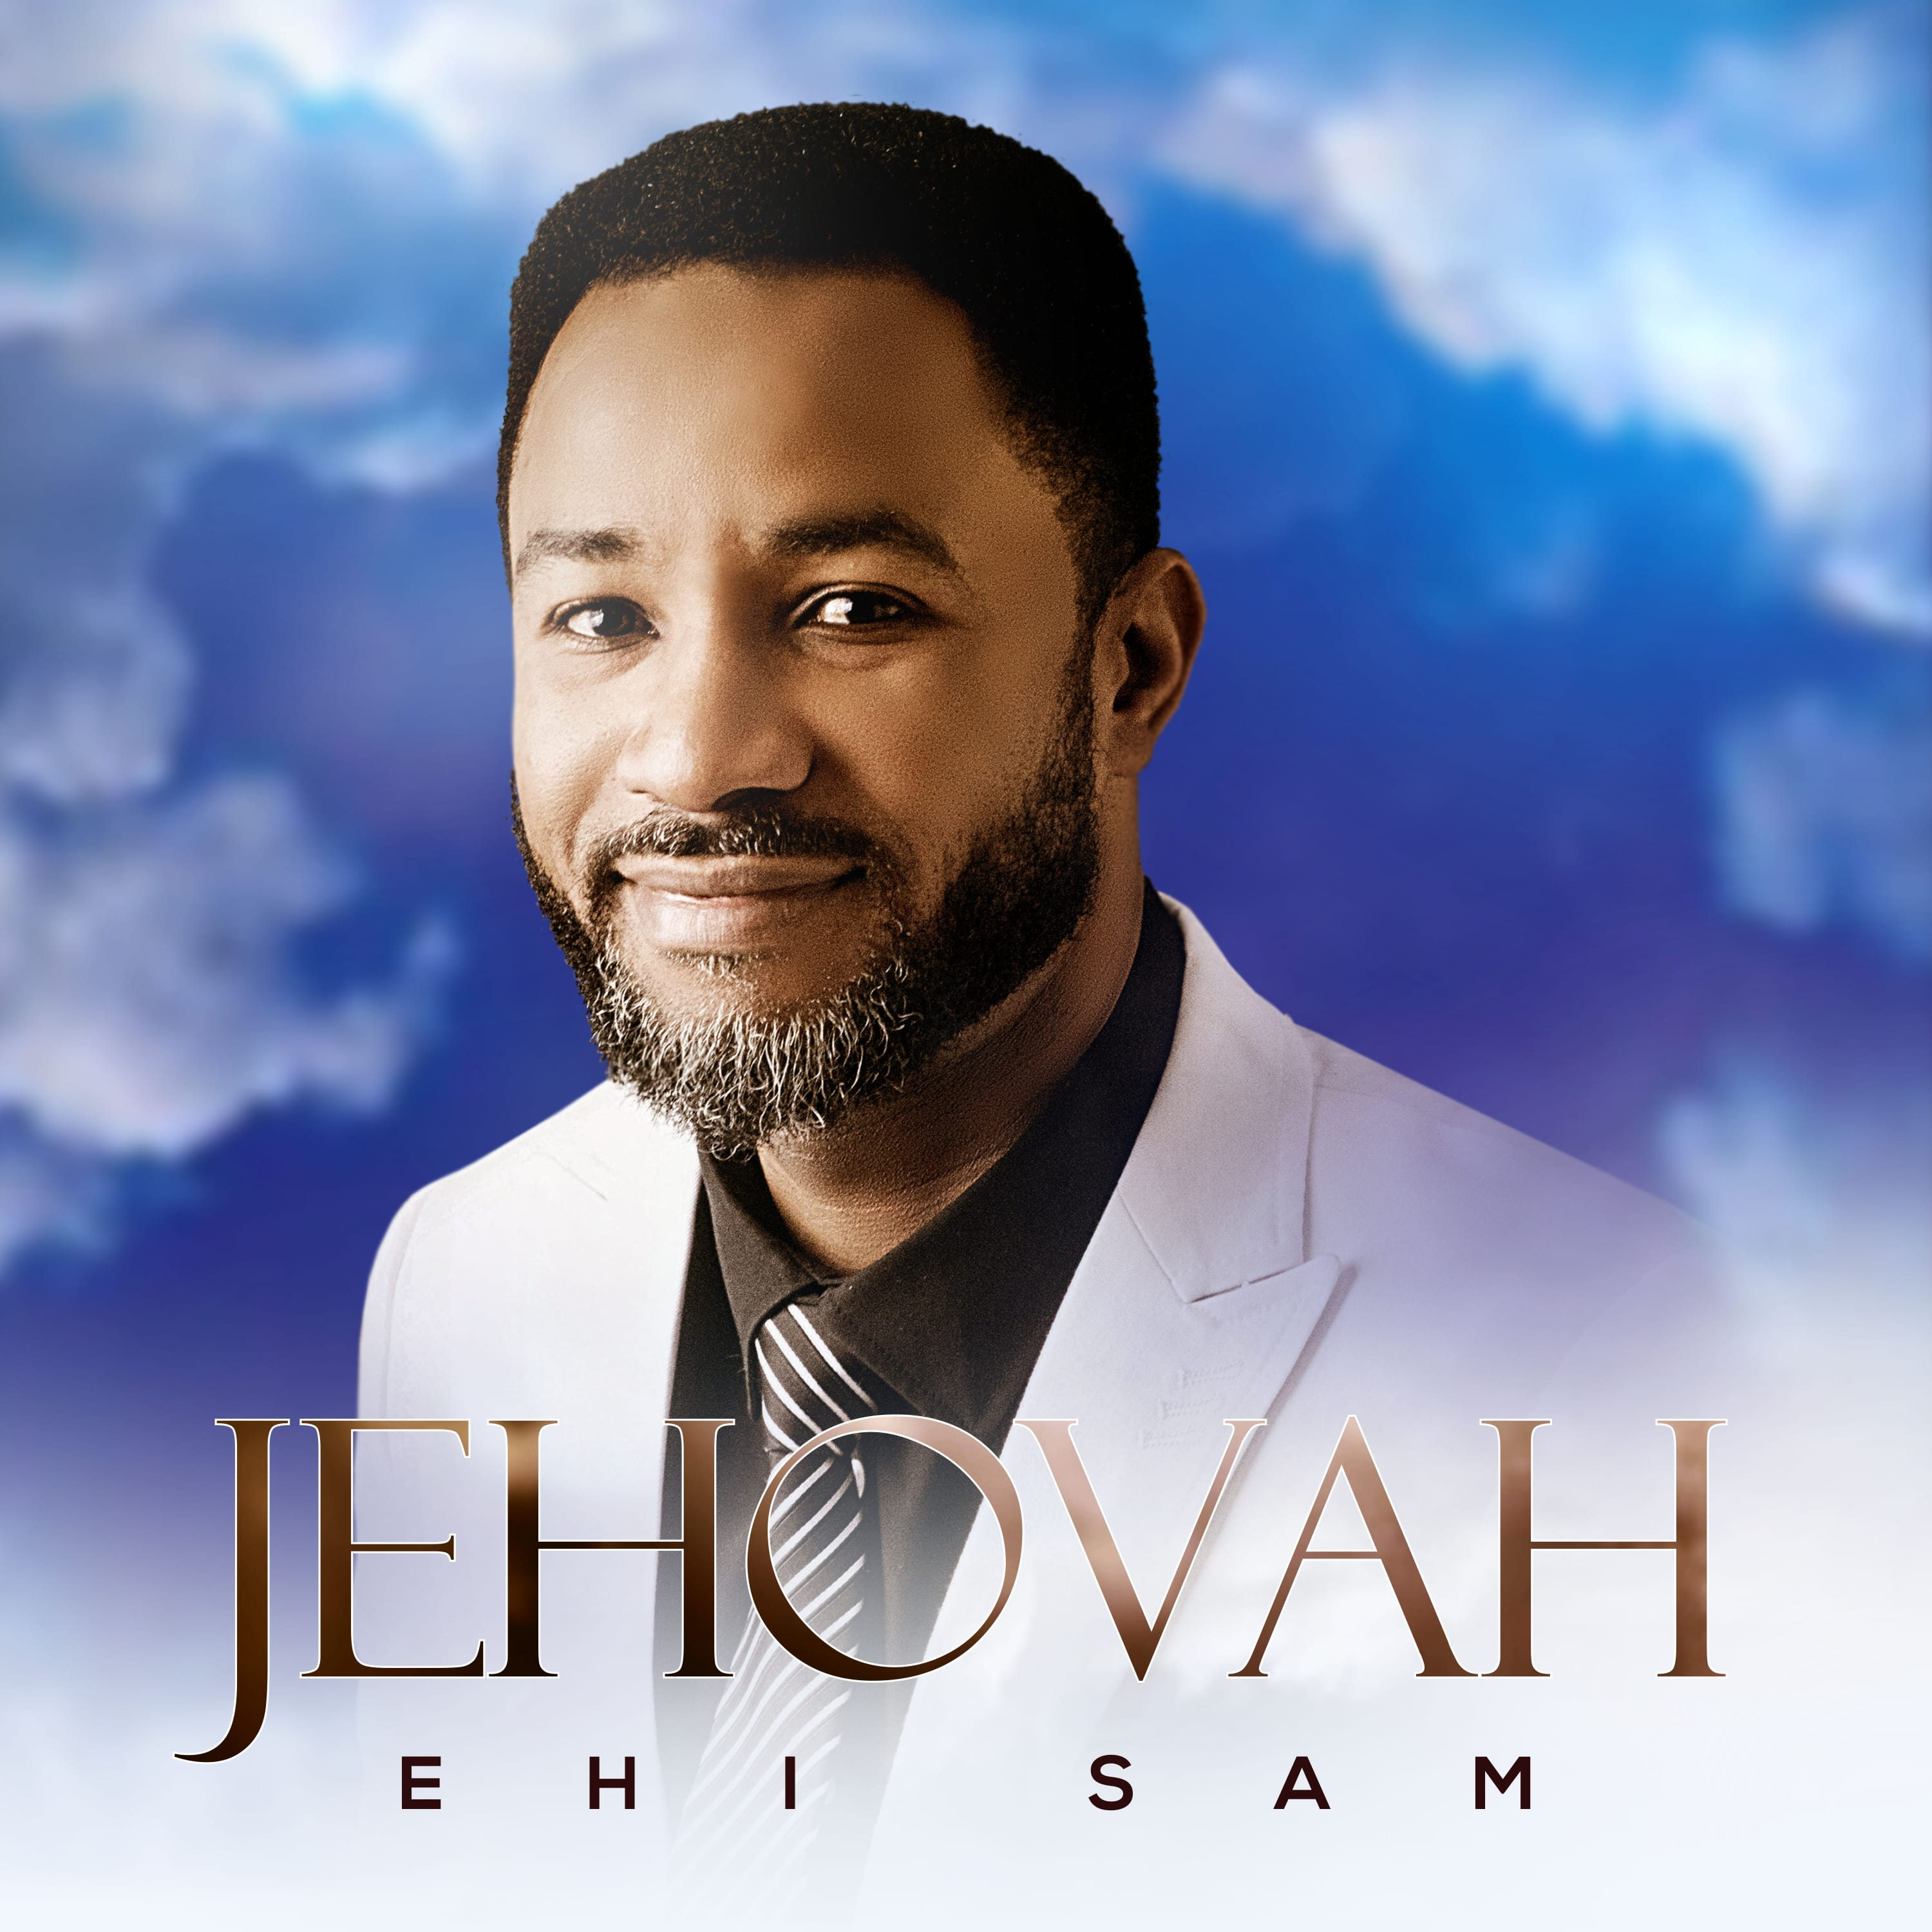 Jehovah Image